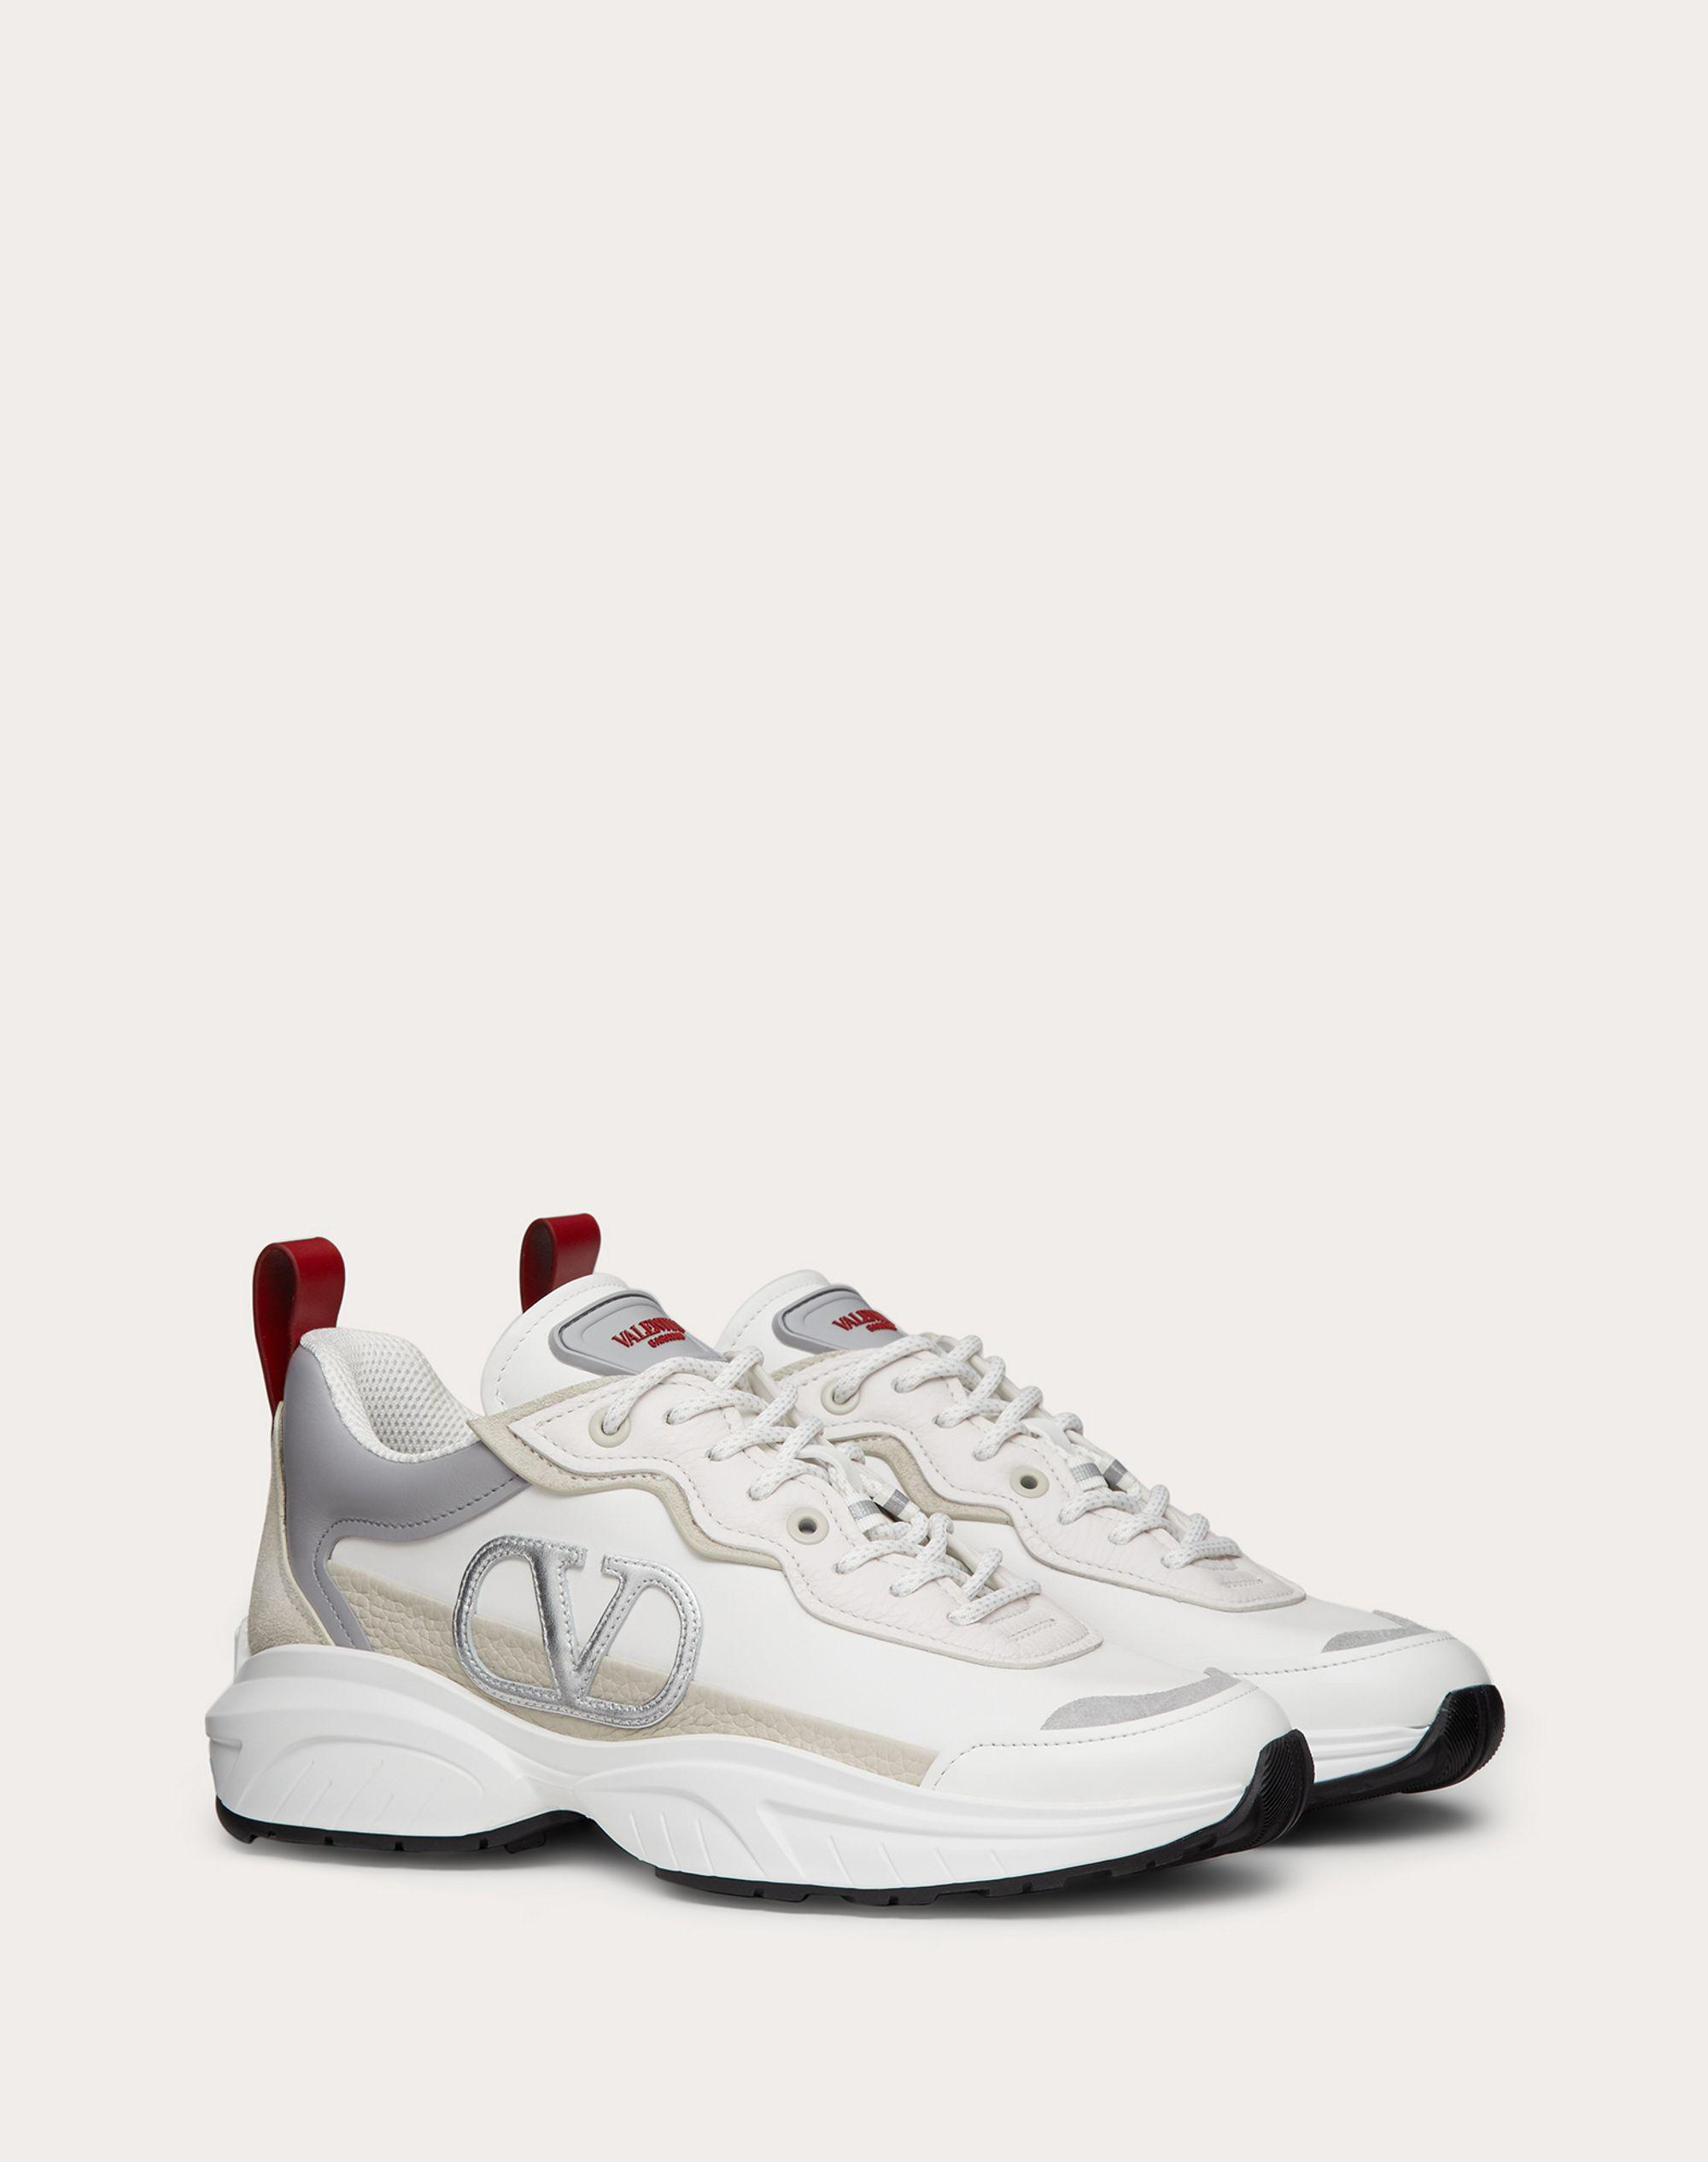 SHEGOES Sneaker in split leather and calfskin leather 1